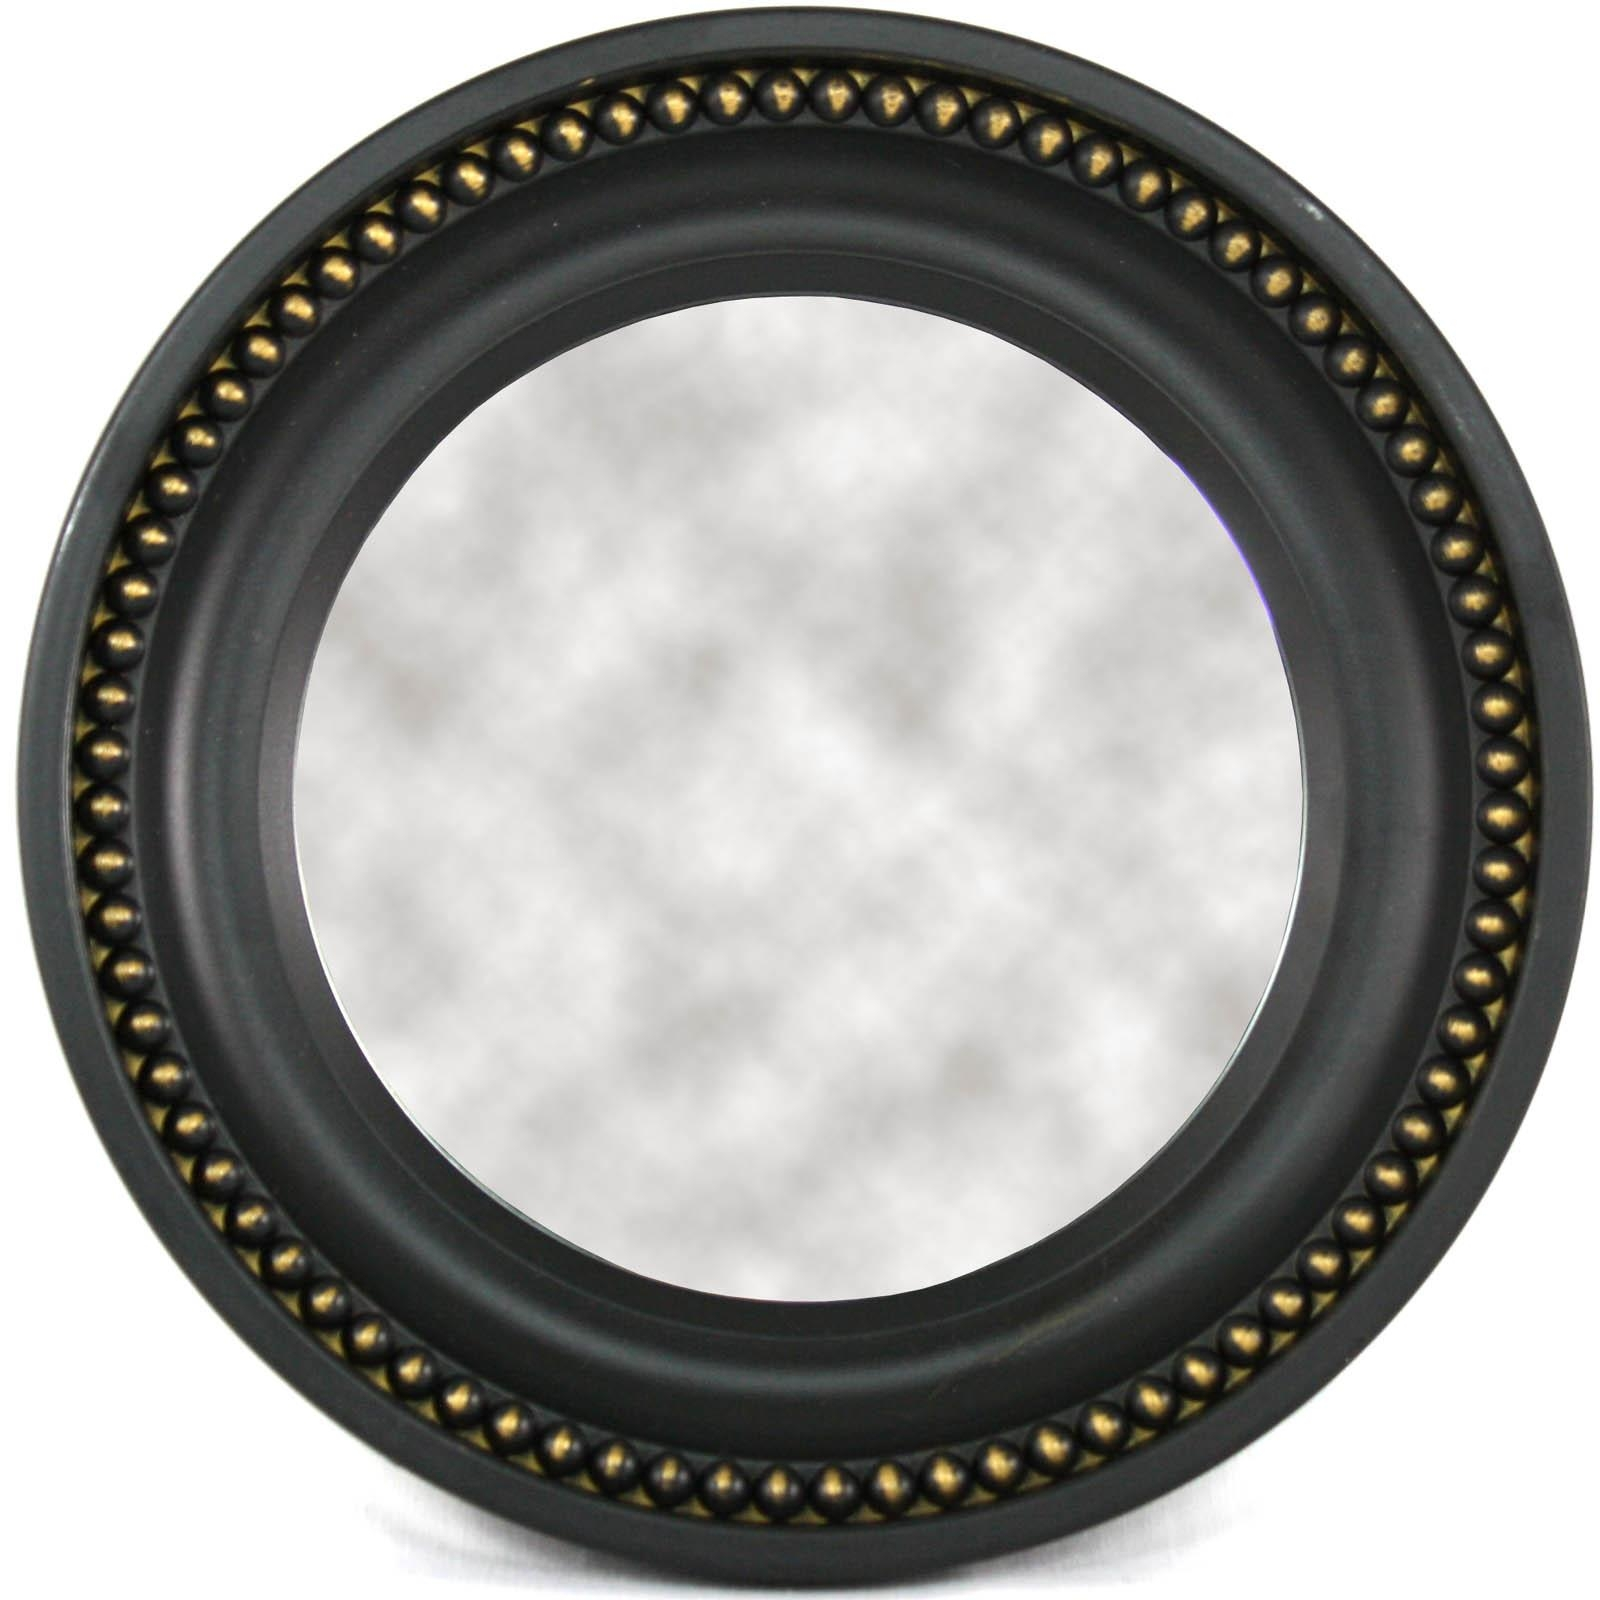 Small Round Black Mirror, Pertaining To Round Black Mirrors (Image 19 of 20)